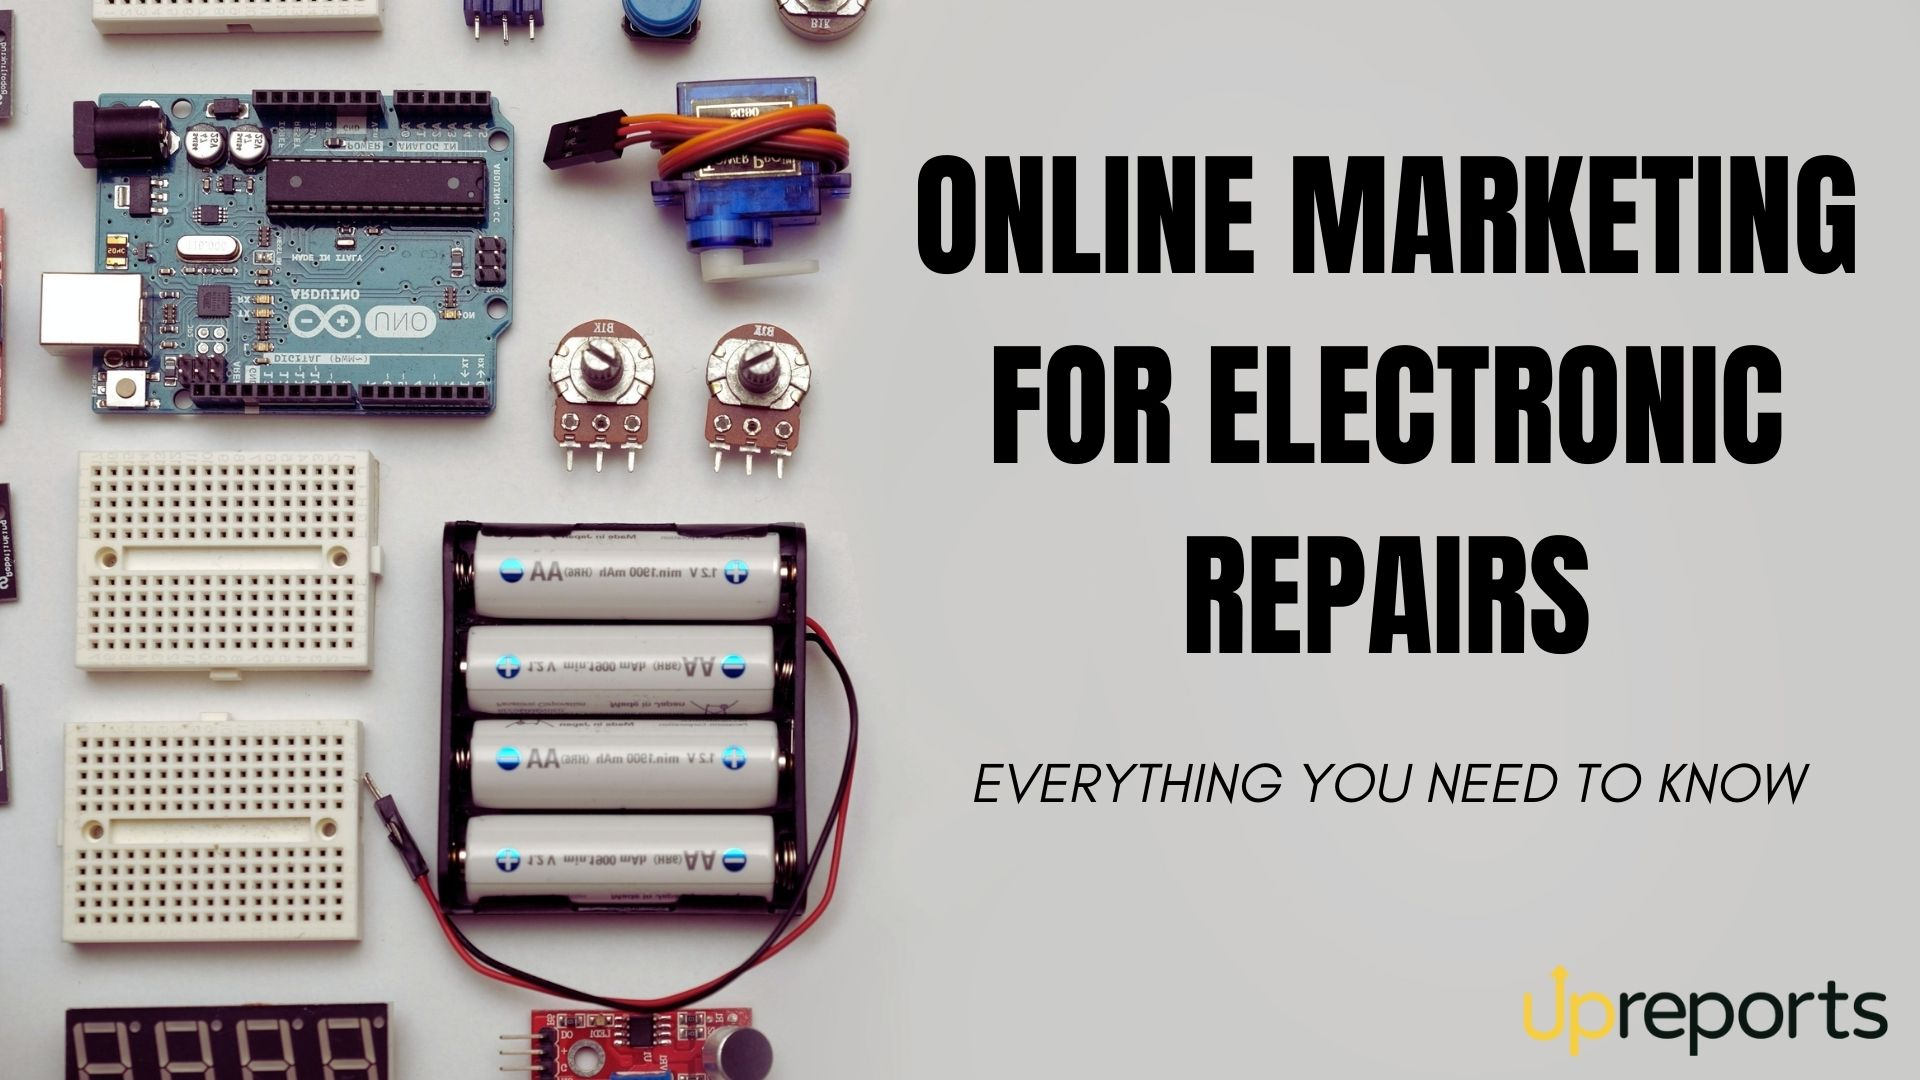 Online Marketing for Electronic Repairs: Everything You Need to Know